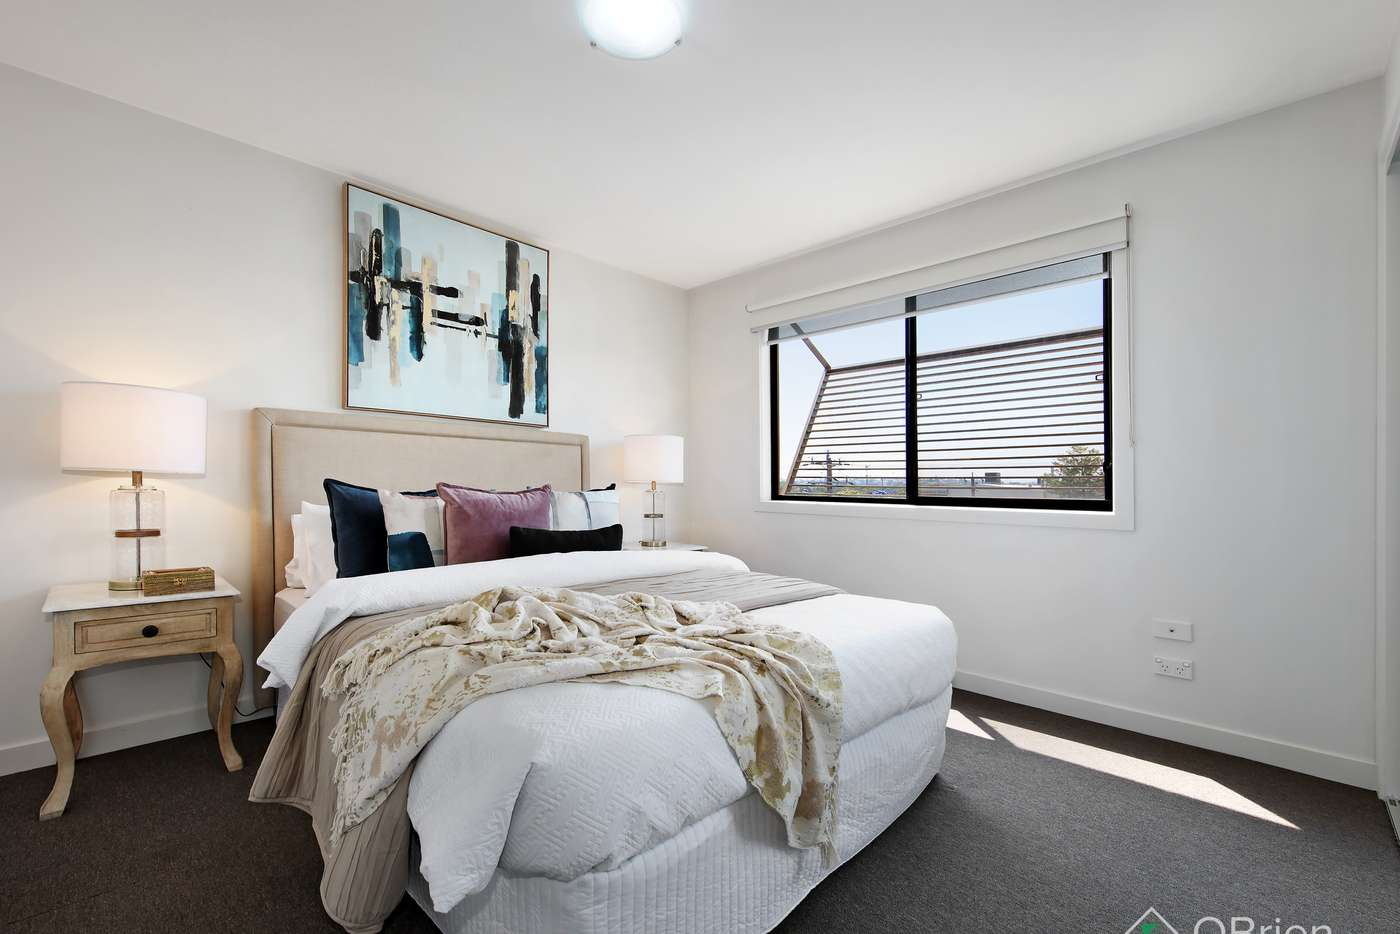 Sixth view of Homely apartment listing, 16/13 Logie Street, Oakleigh VIC 3166